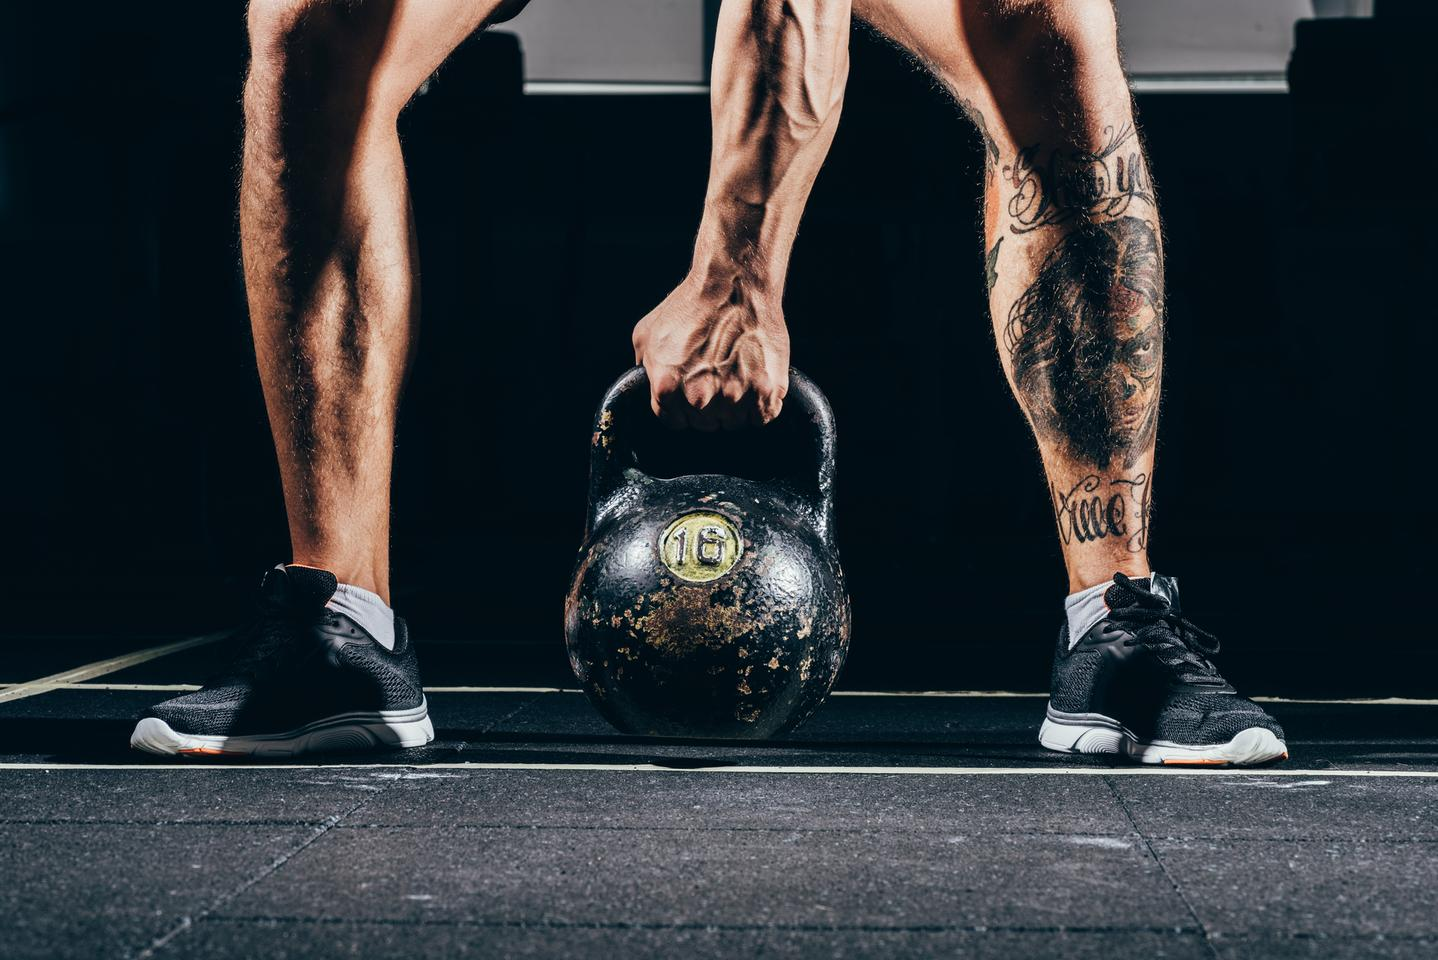 A new study has uncovered new detail around the weight loss effects of weight and resistance training